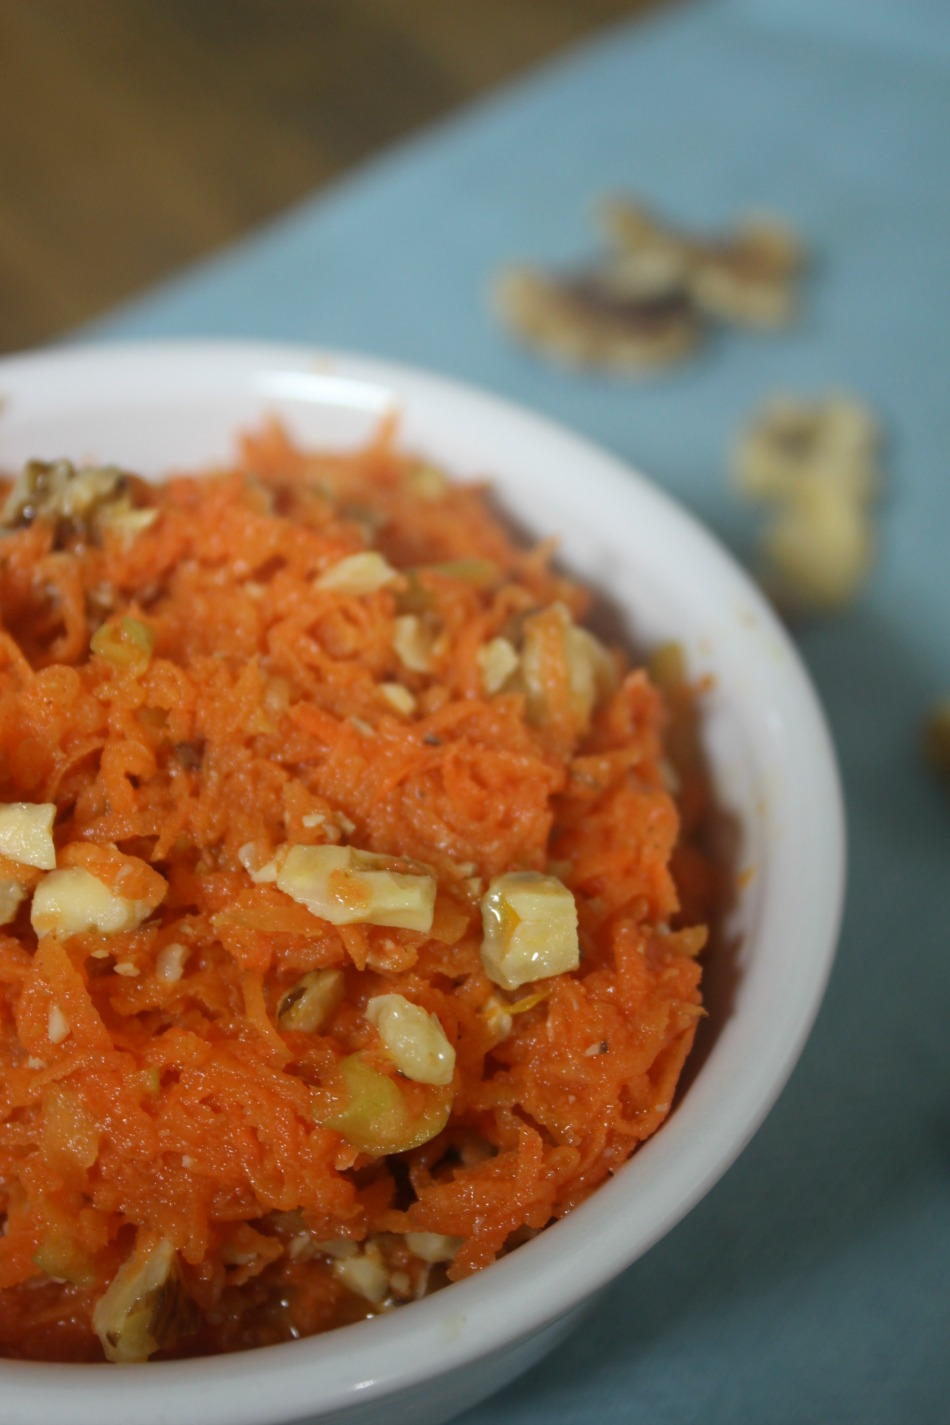 Sweet And Sour Carrot Salad | Growing Up Herbal | If you struggle with getting your kids to eat veggies, you'll love this delicious carrot salad recipe.